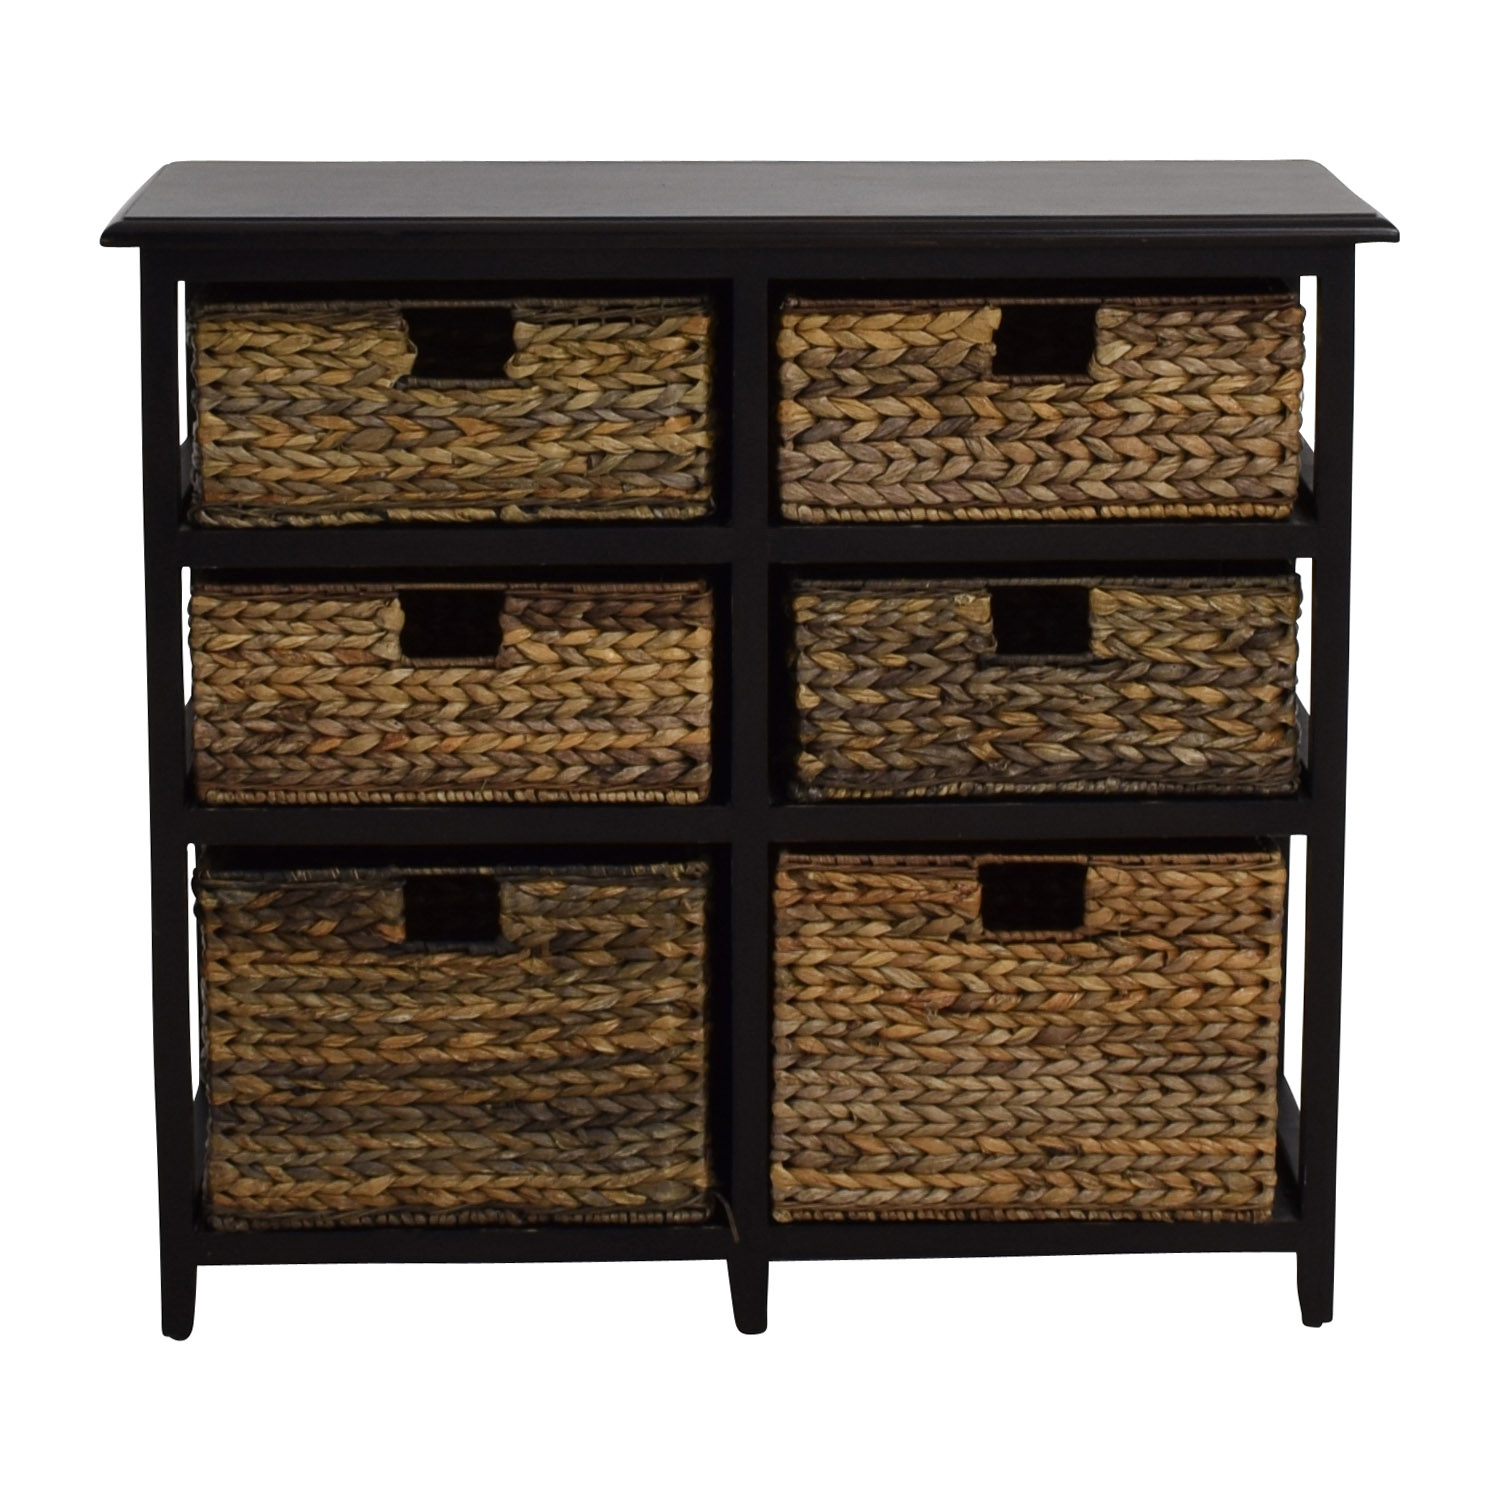 Superior Pier 1 Imports Pier 1 Imports Black Wicker Storage Drawers Nyc ...